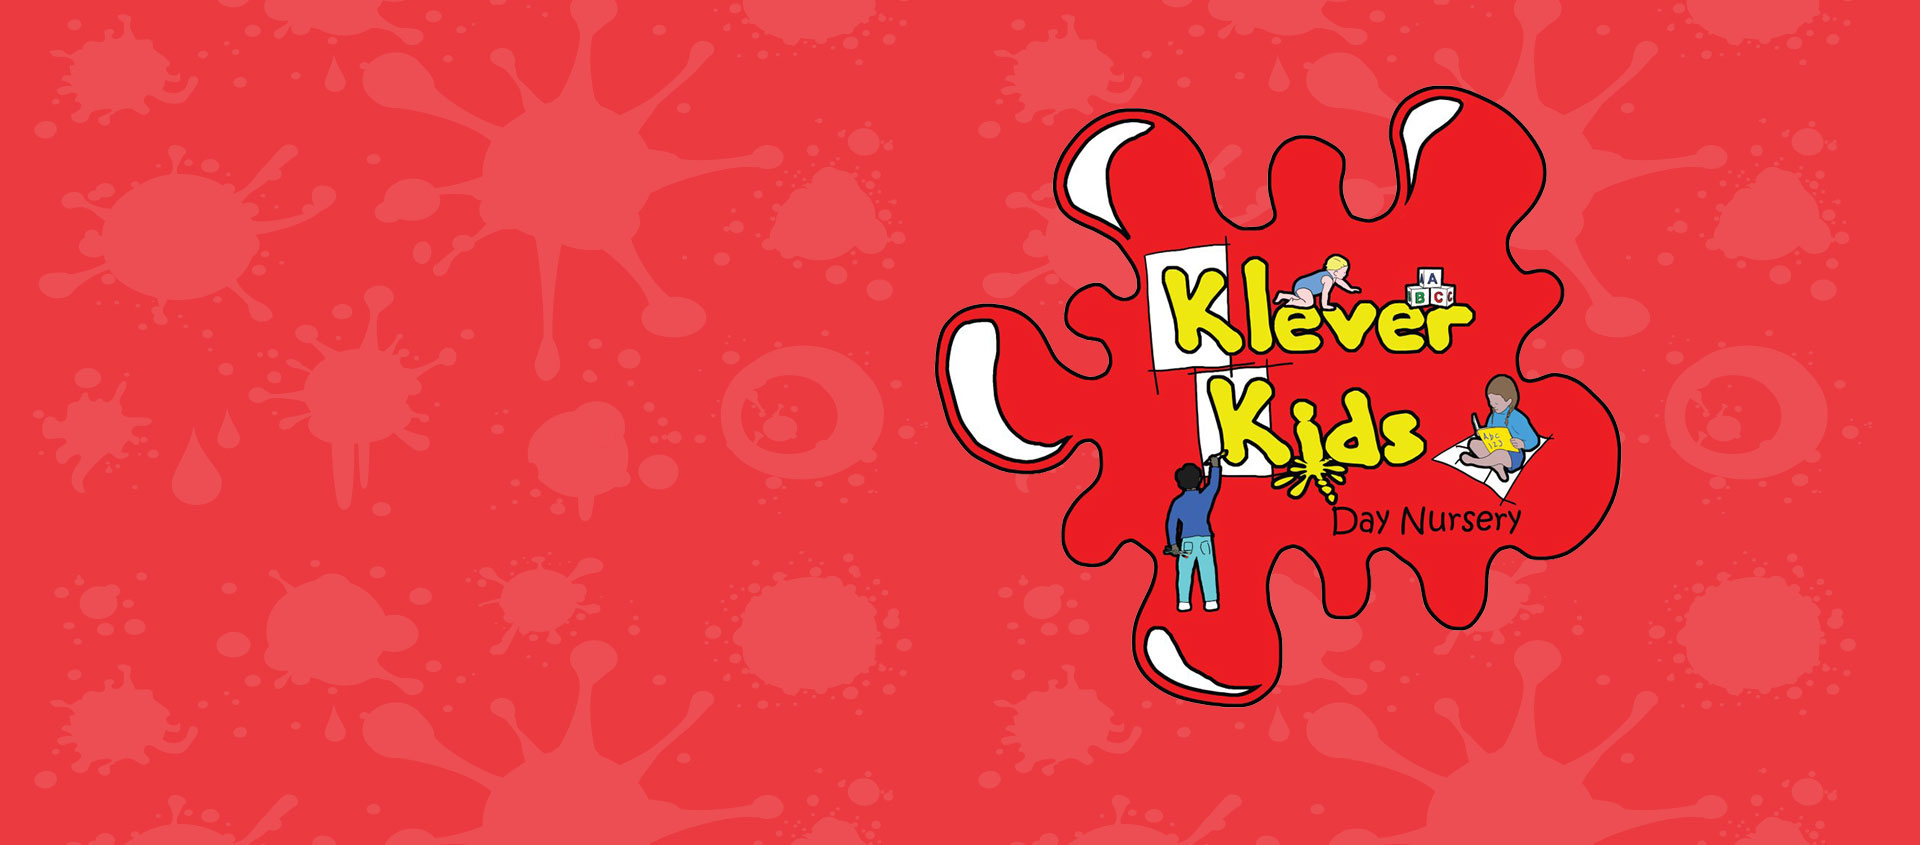 Welcome to Klever Kids Day Nursery